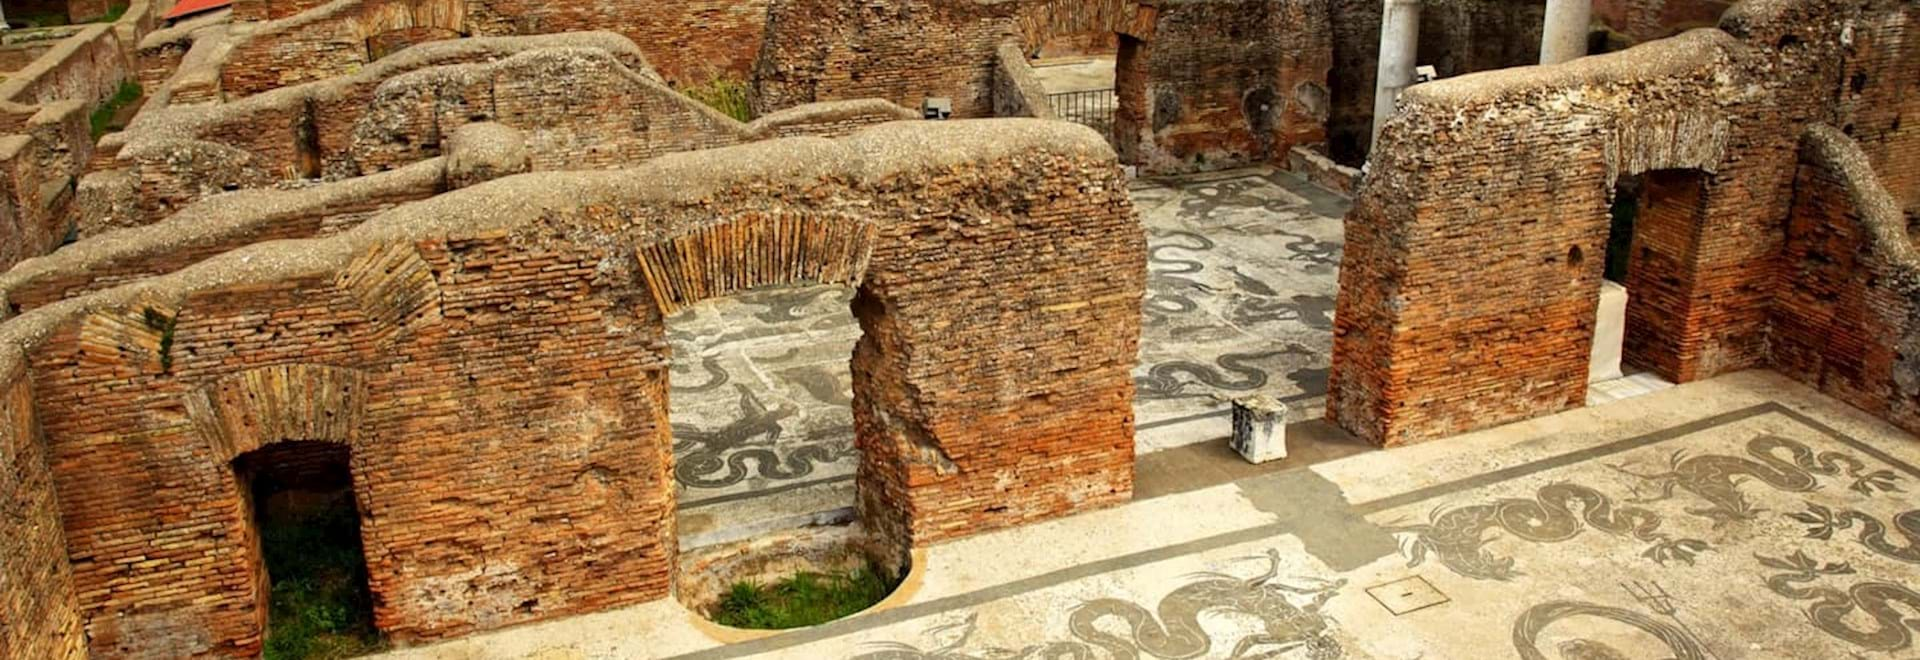 Ostia Antica well preserved walls and tiles